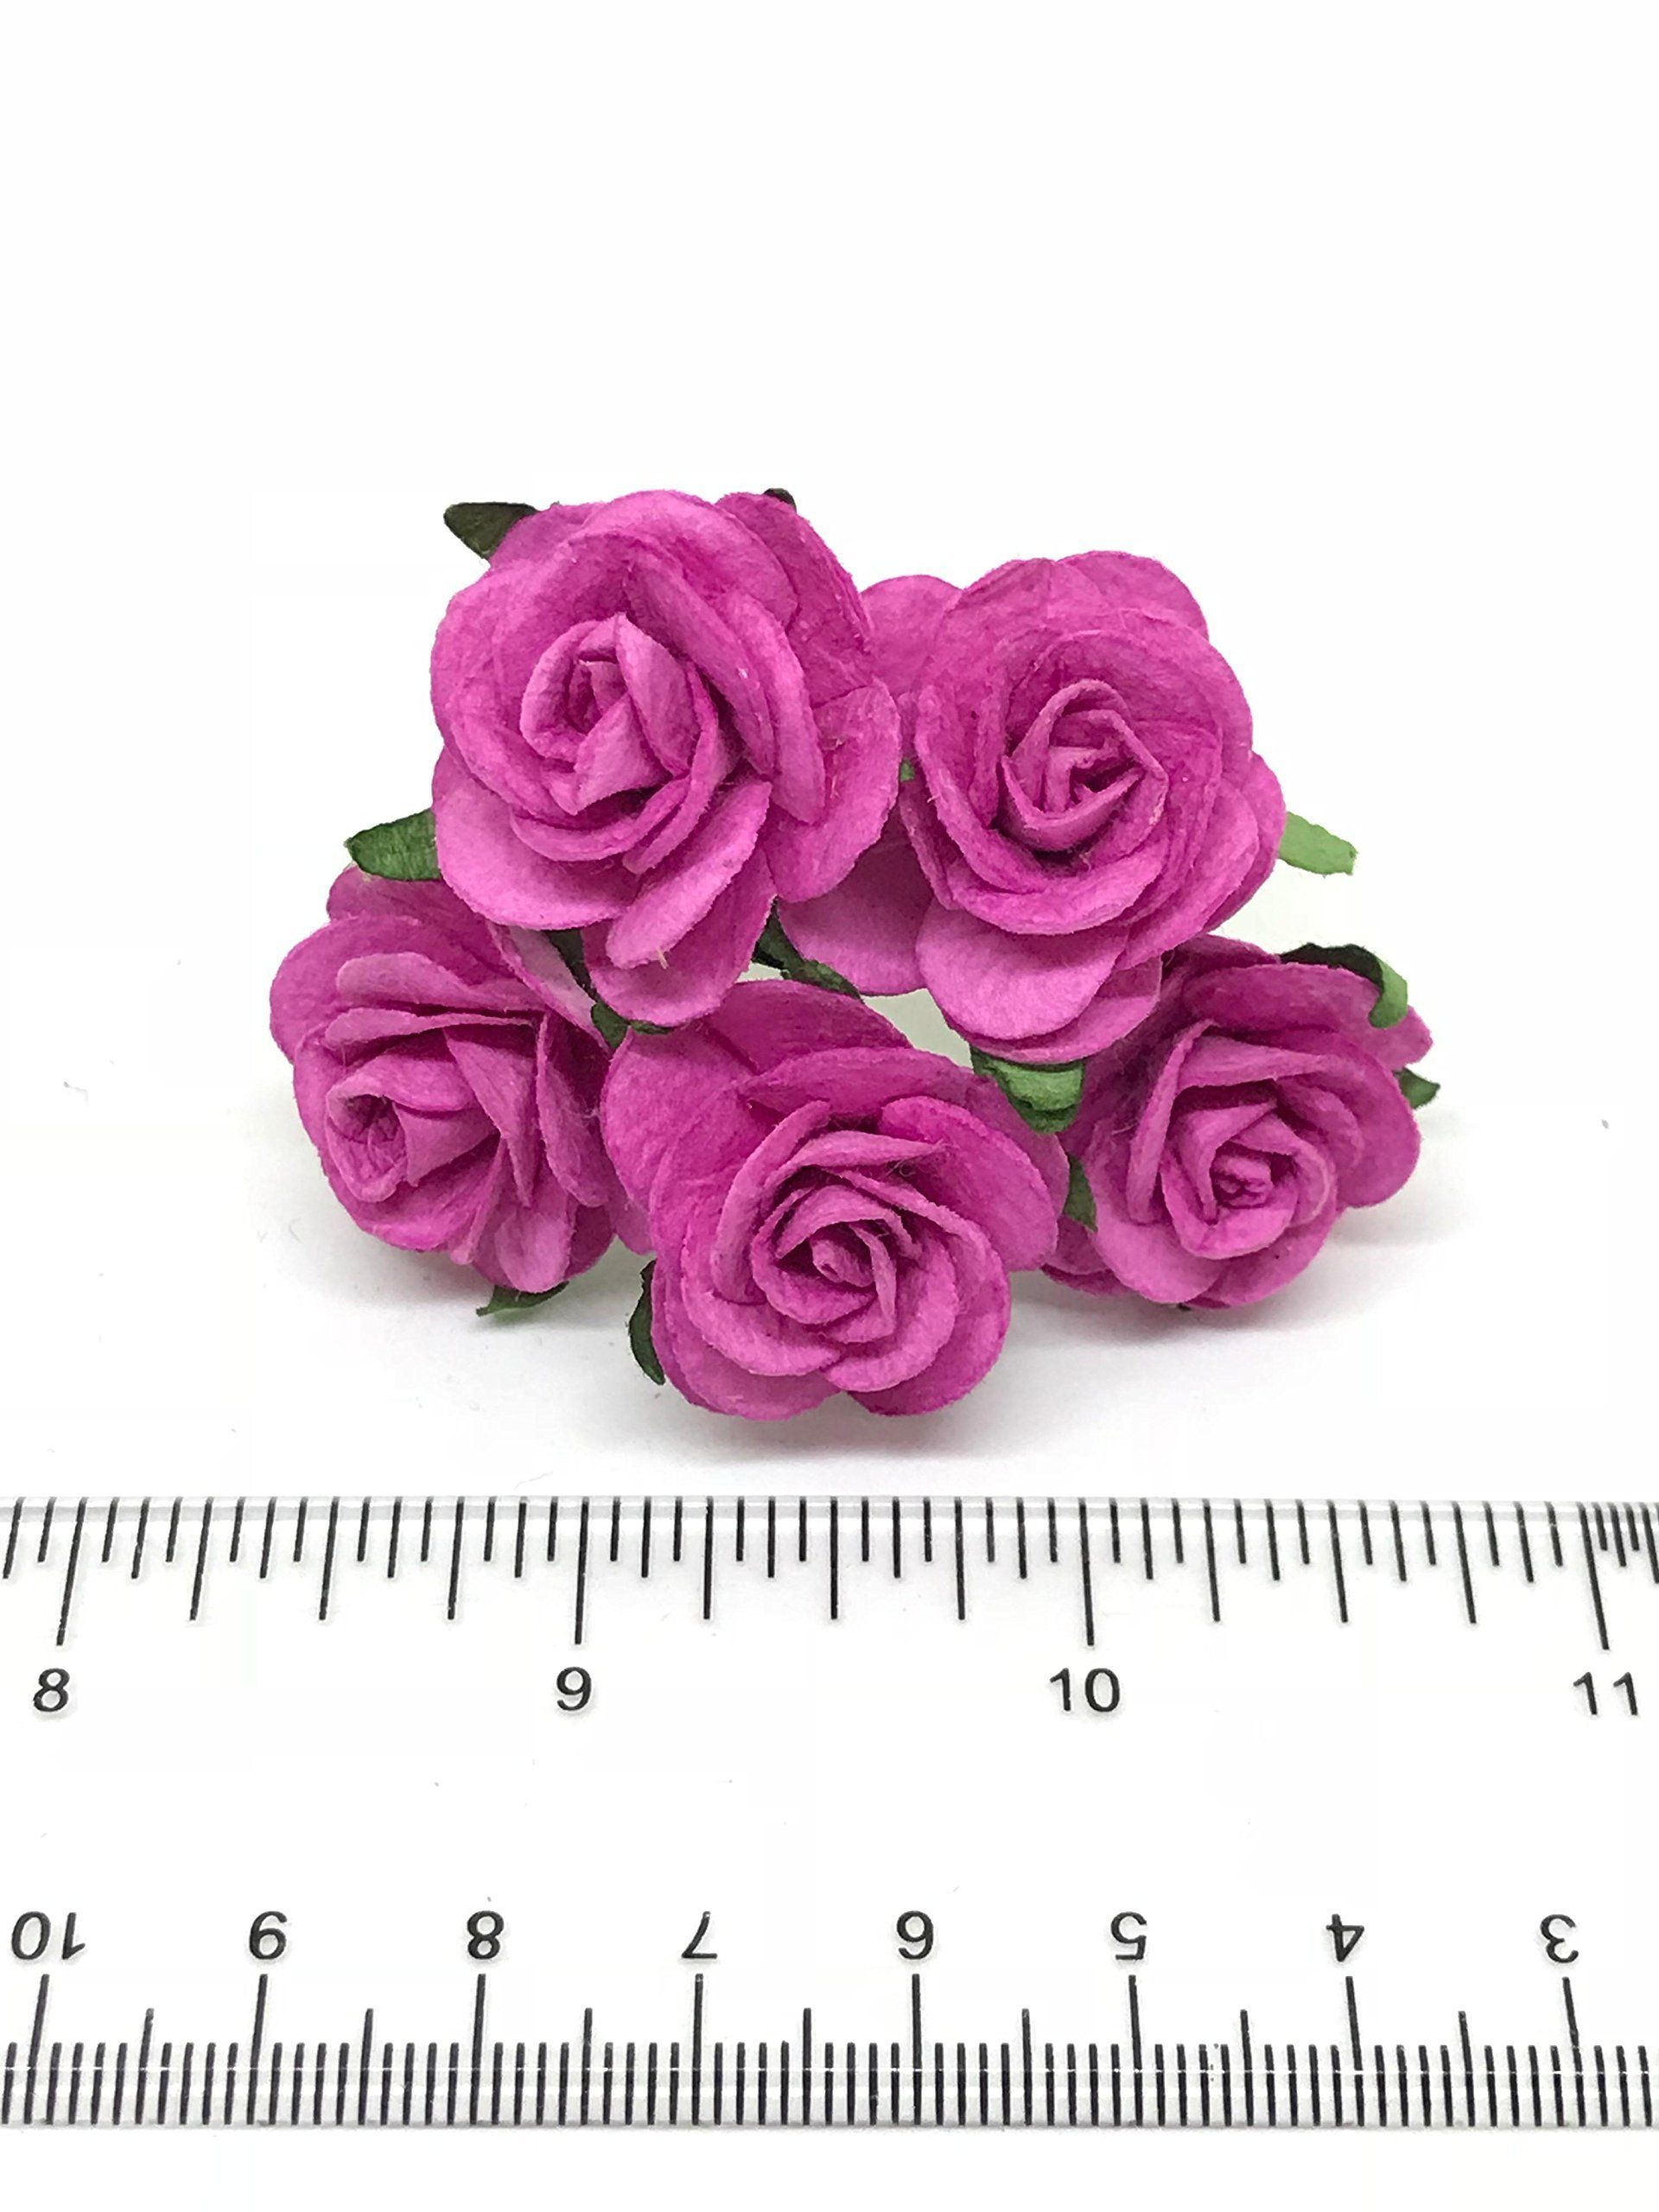 1 Pink Paper Roses Mulberry Paper Flowers Miniature Flowers